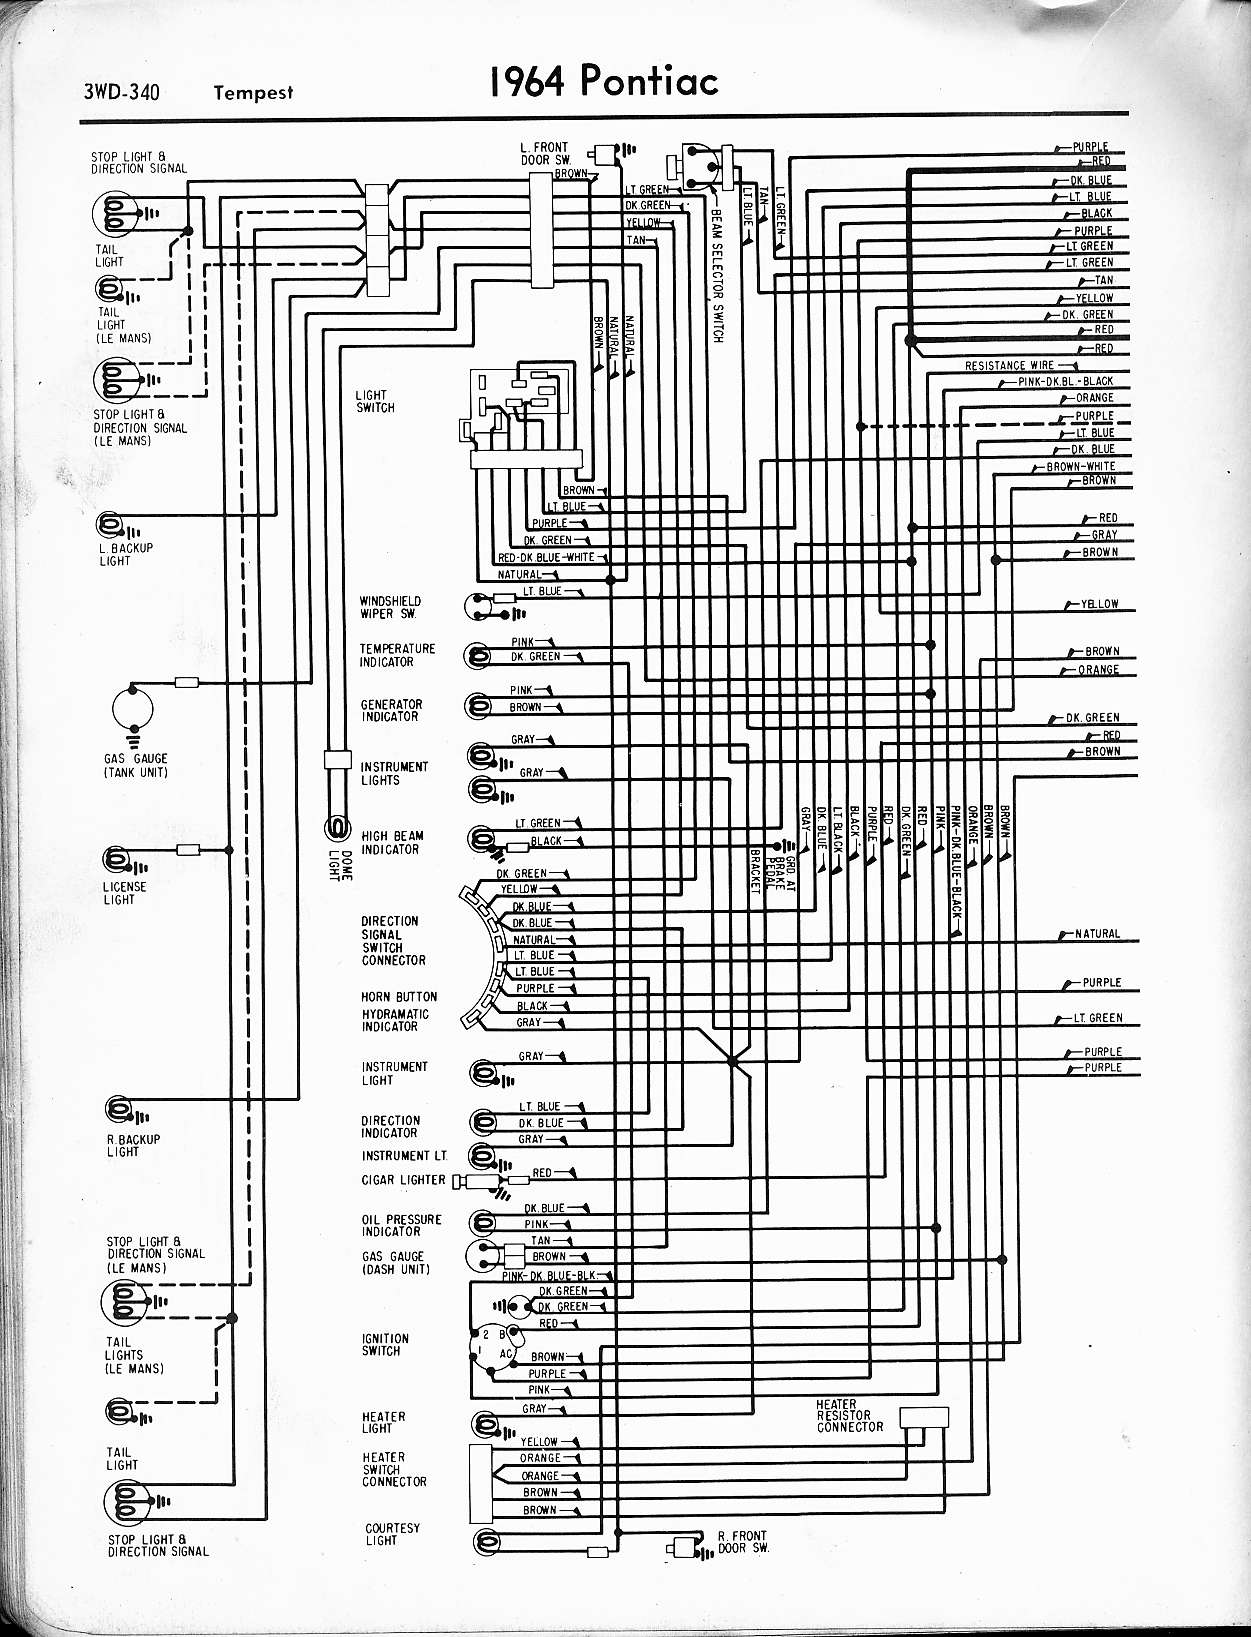 06 Gto Wiring Diagram Library. 06 Gto Wiring Diagram. Seat. 06 Gto Seat Wiring Pinout At Scoala.co